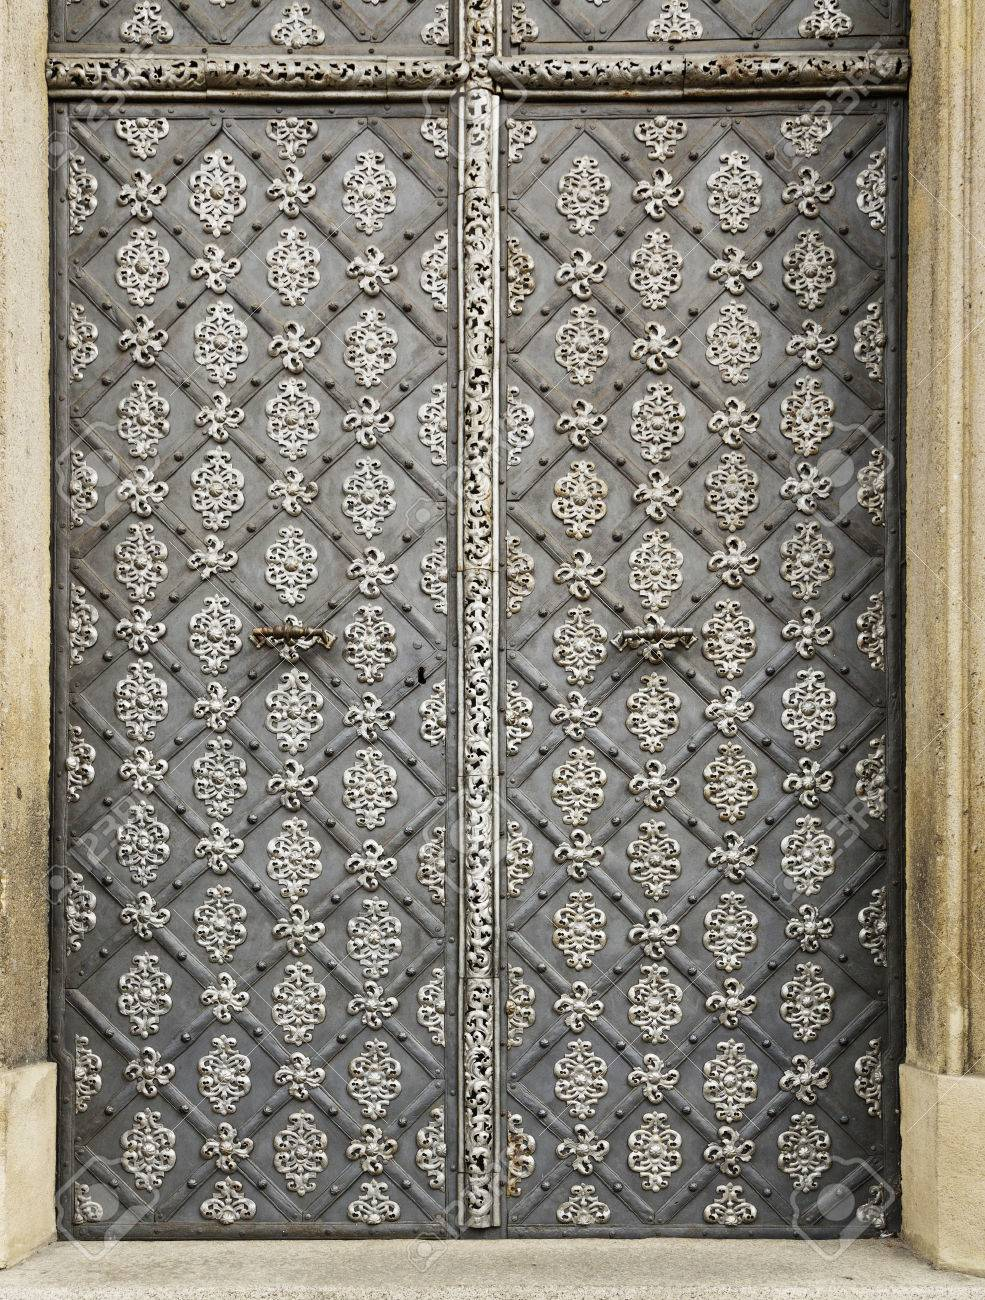 iron door with the handle old metal Church doors Stock Photo - 38849469 & Iron Door With The Handle Old Metal Church Doors Stock Photo ...